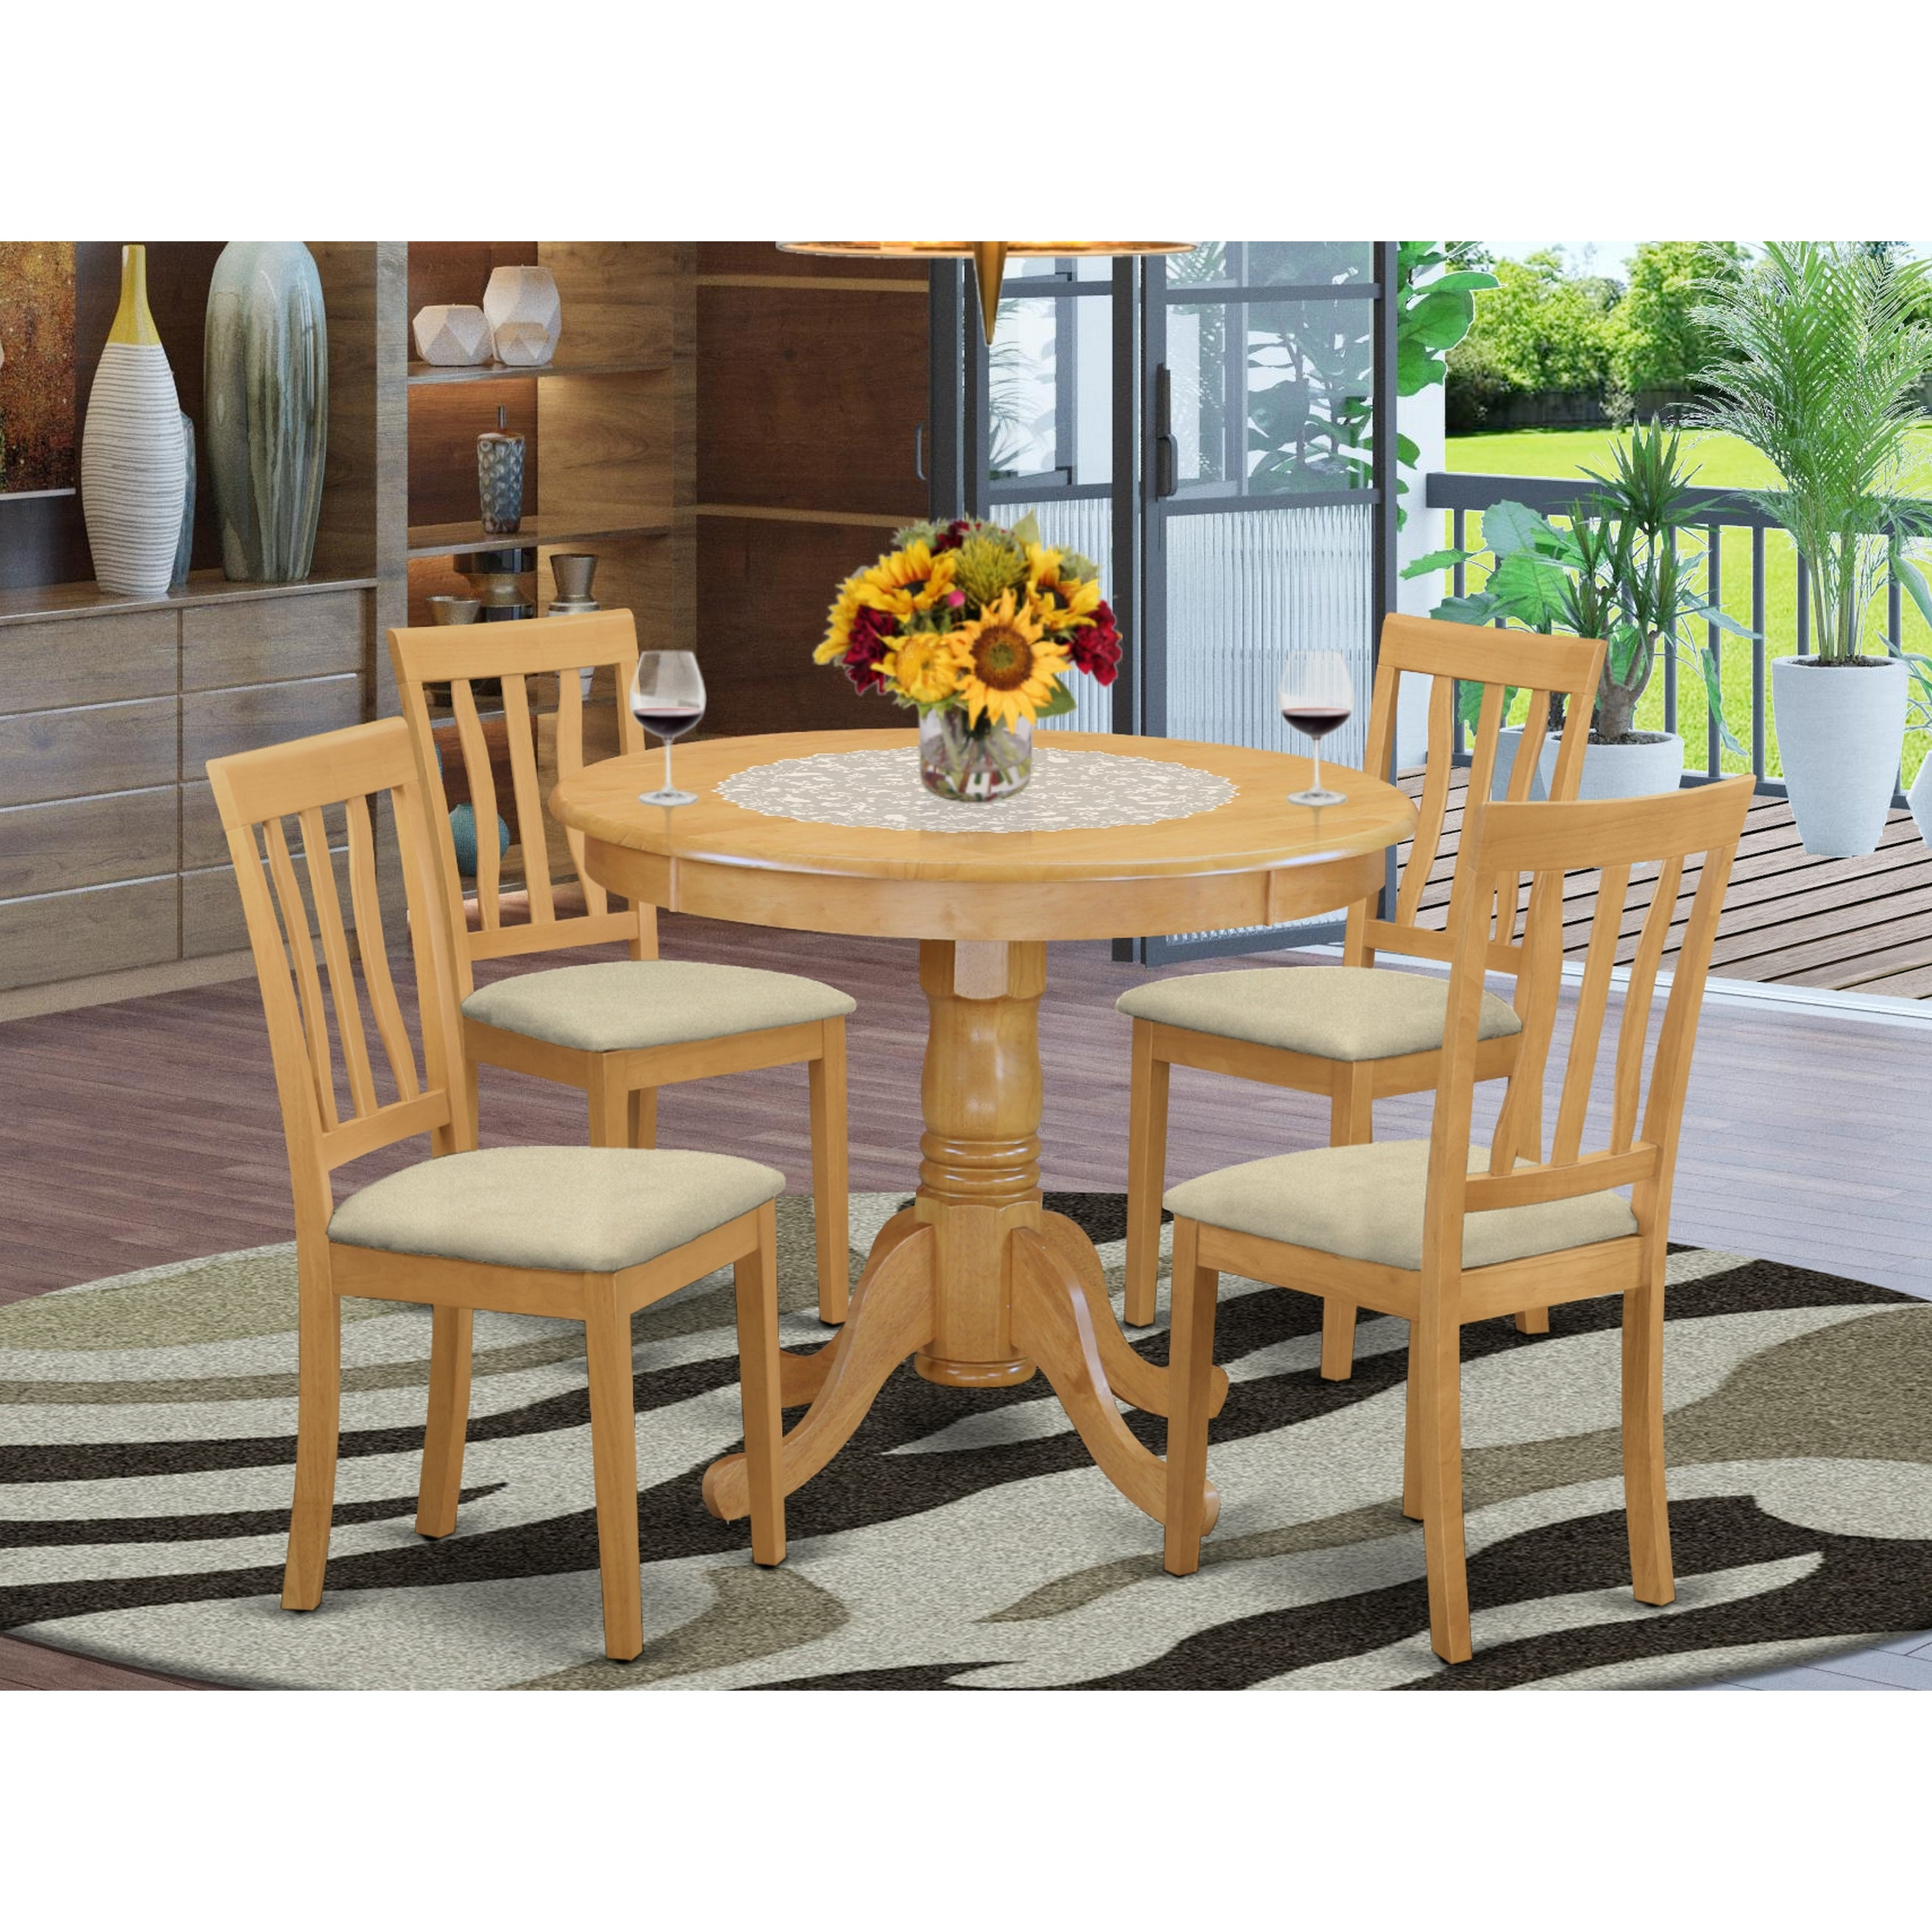 Picture of: Oak Small Kitchen Table And 4 Chairs Dining Set On Sale Overstock 10201204 Faux